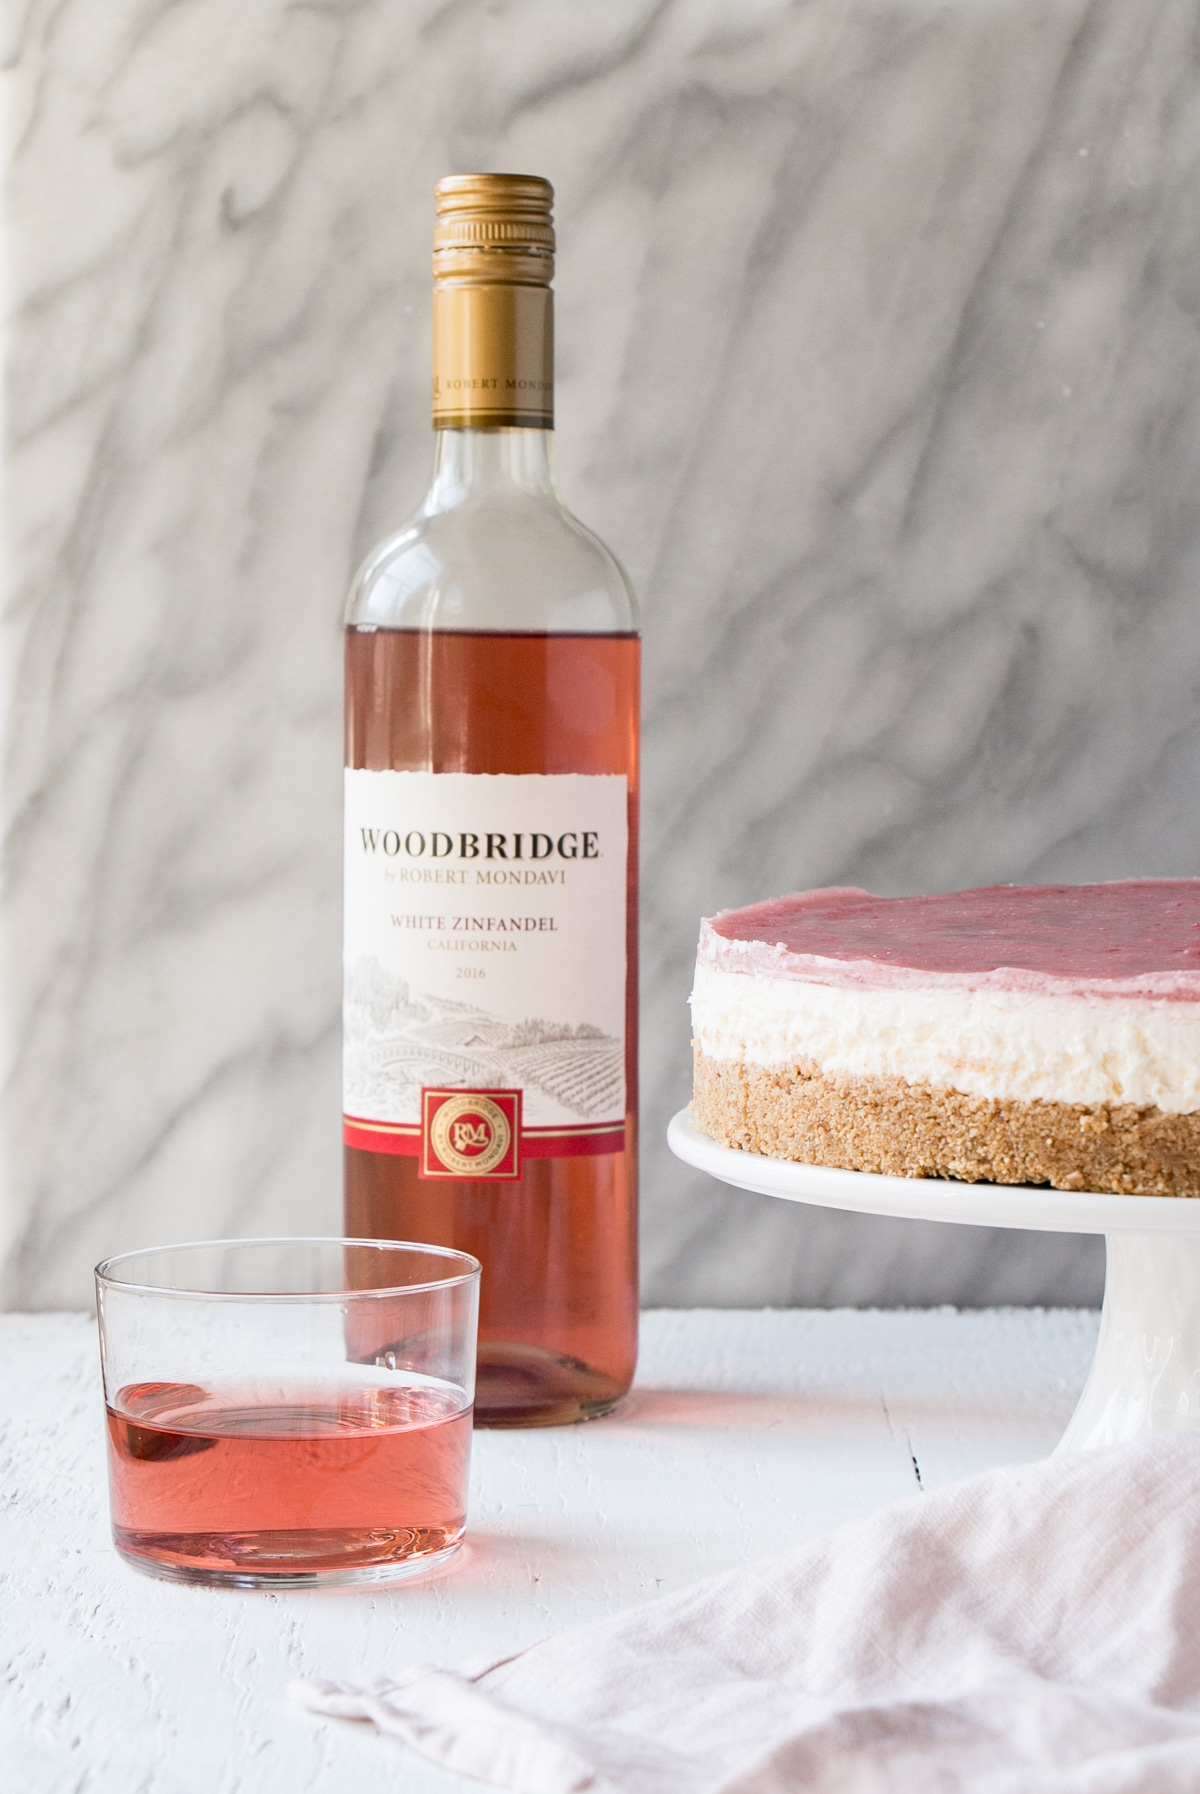 No Bake Rhubarb Cheesecake on a white cake stand with a glass and bottle of rose wine.